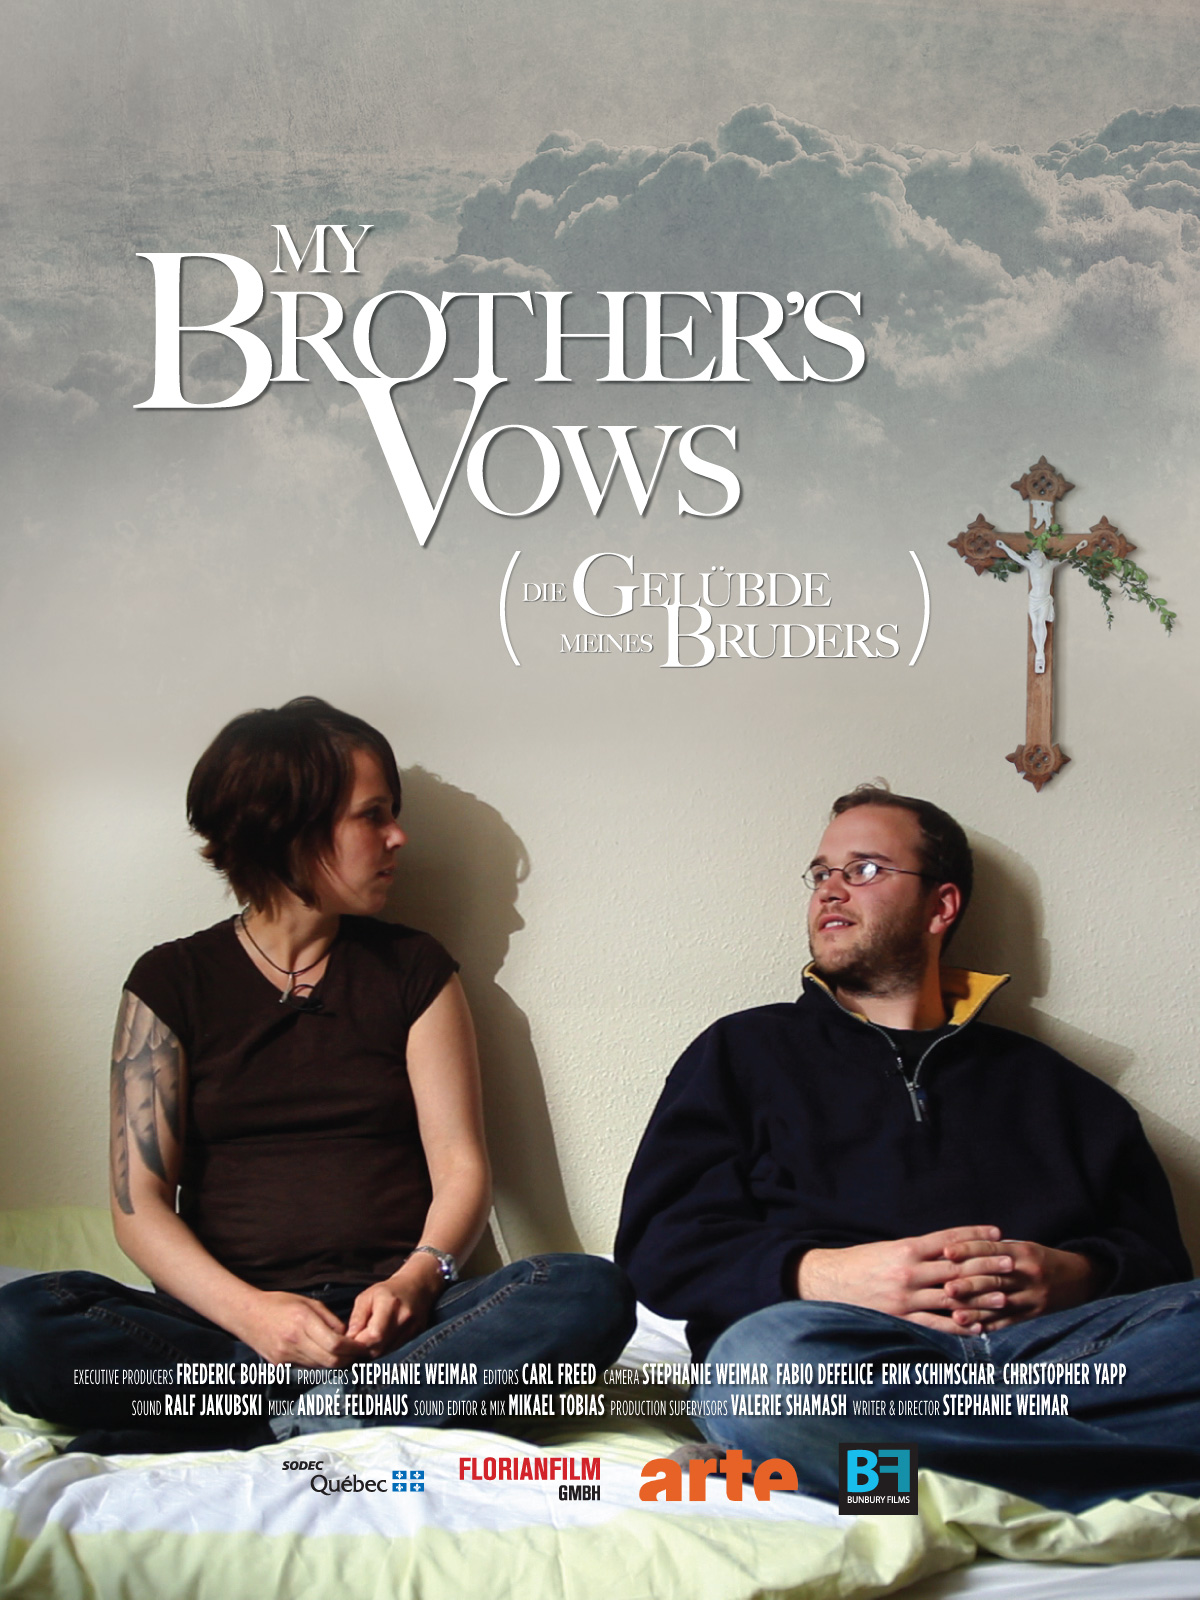 Brothers-Vows-Poster copy.jpg